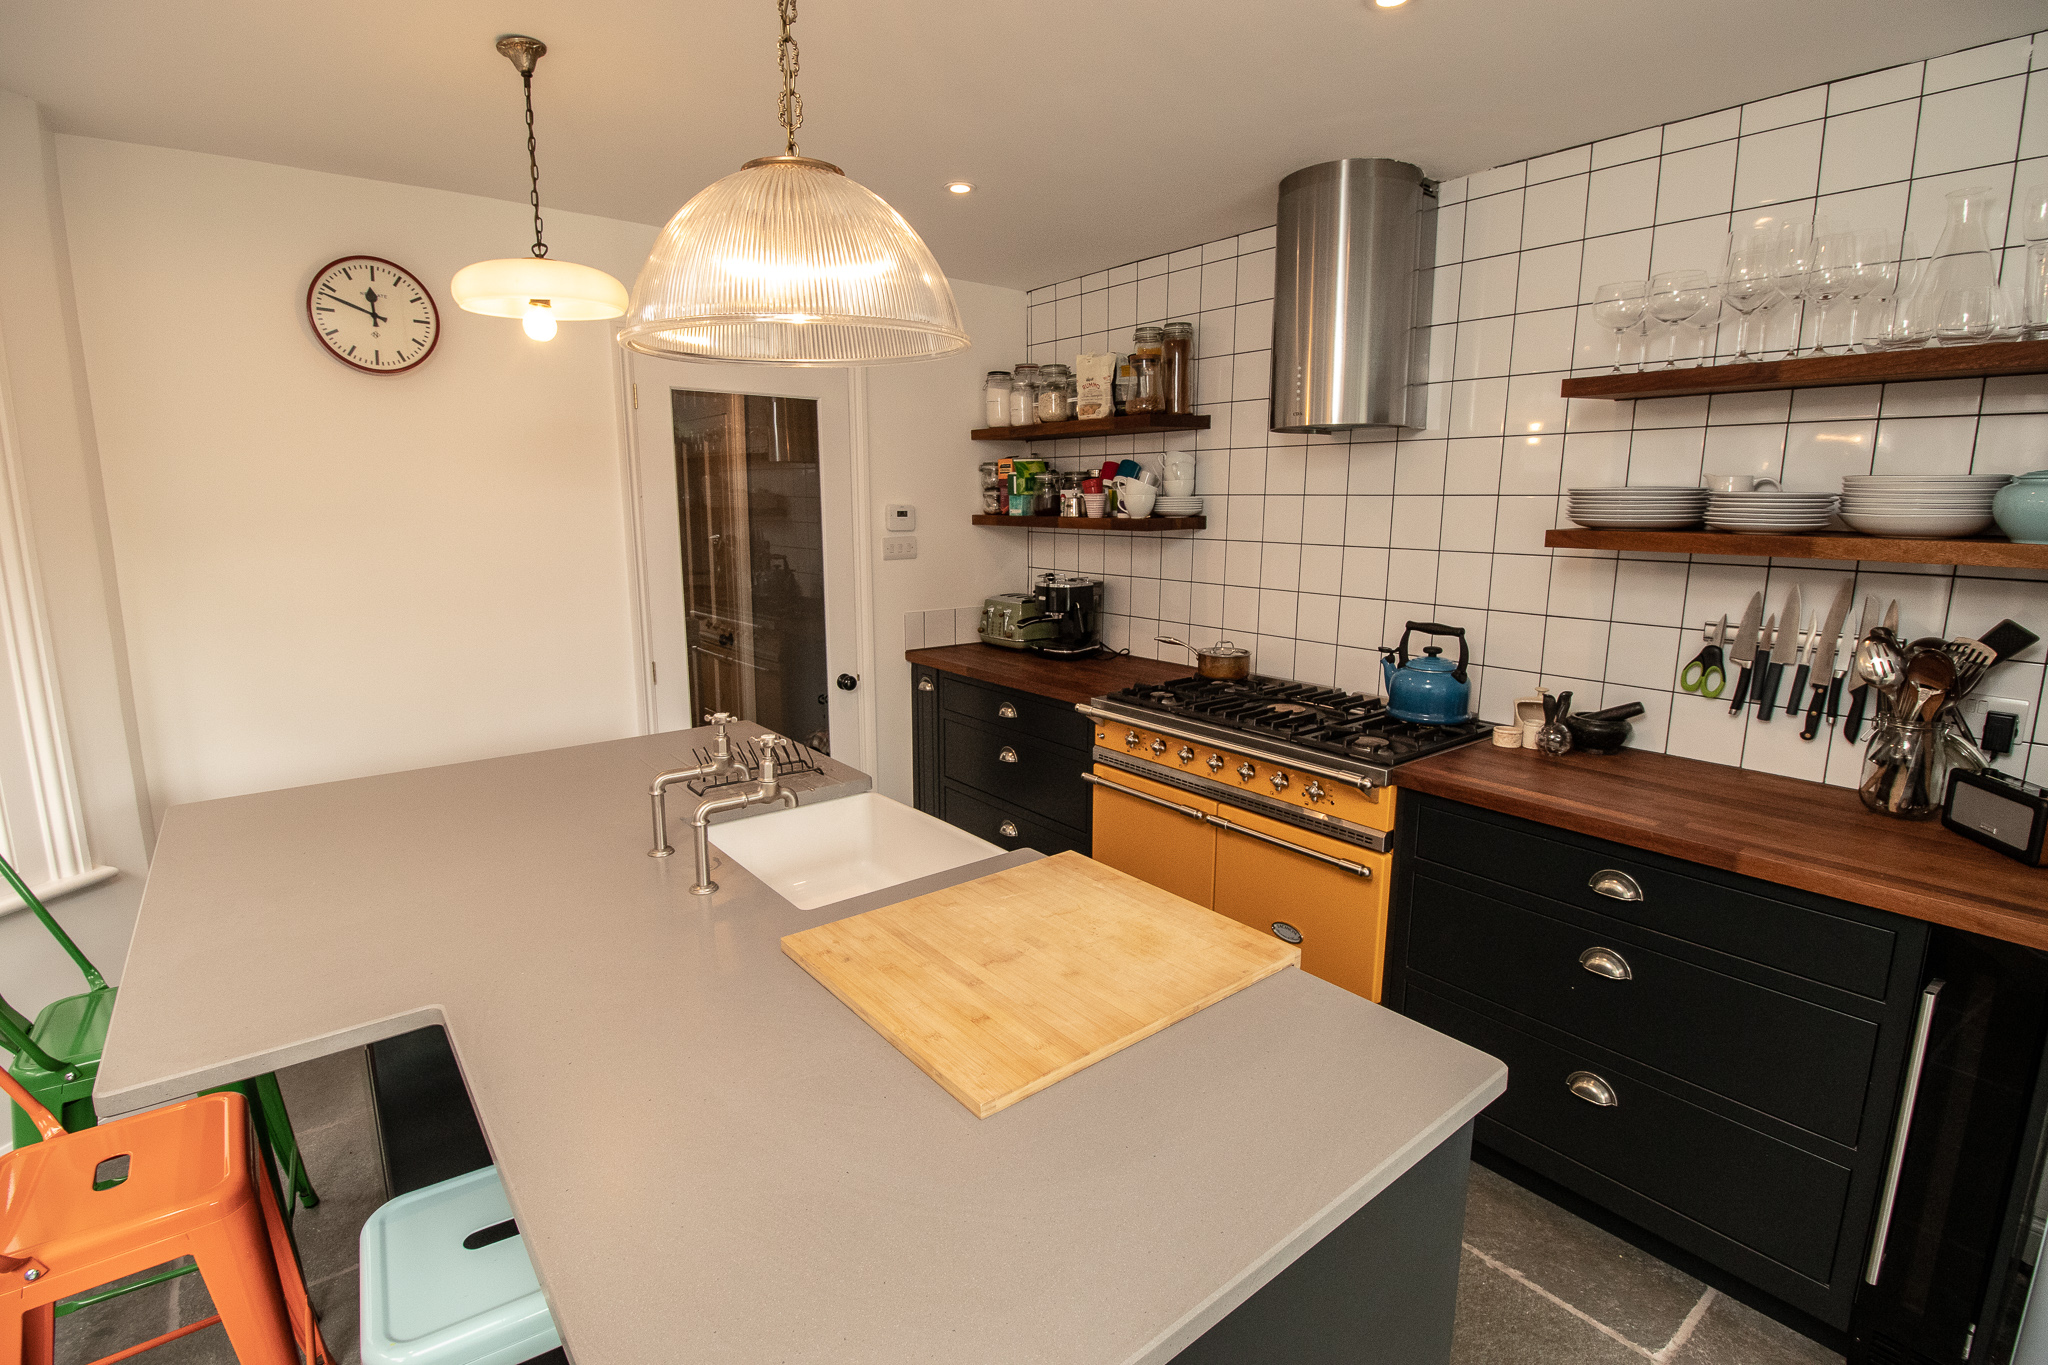 KITCHEN ISLAND, SQUARE TILE, SMEG COOKER.jpg